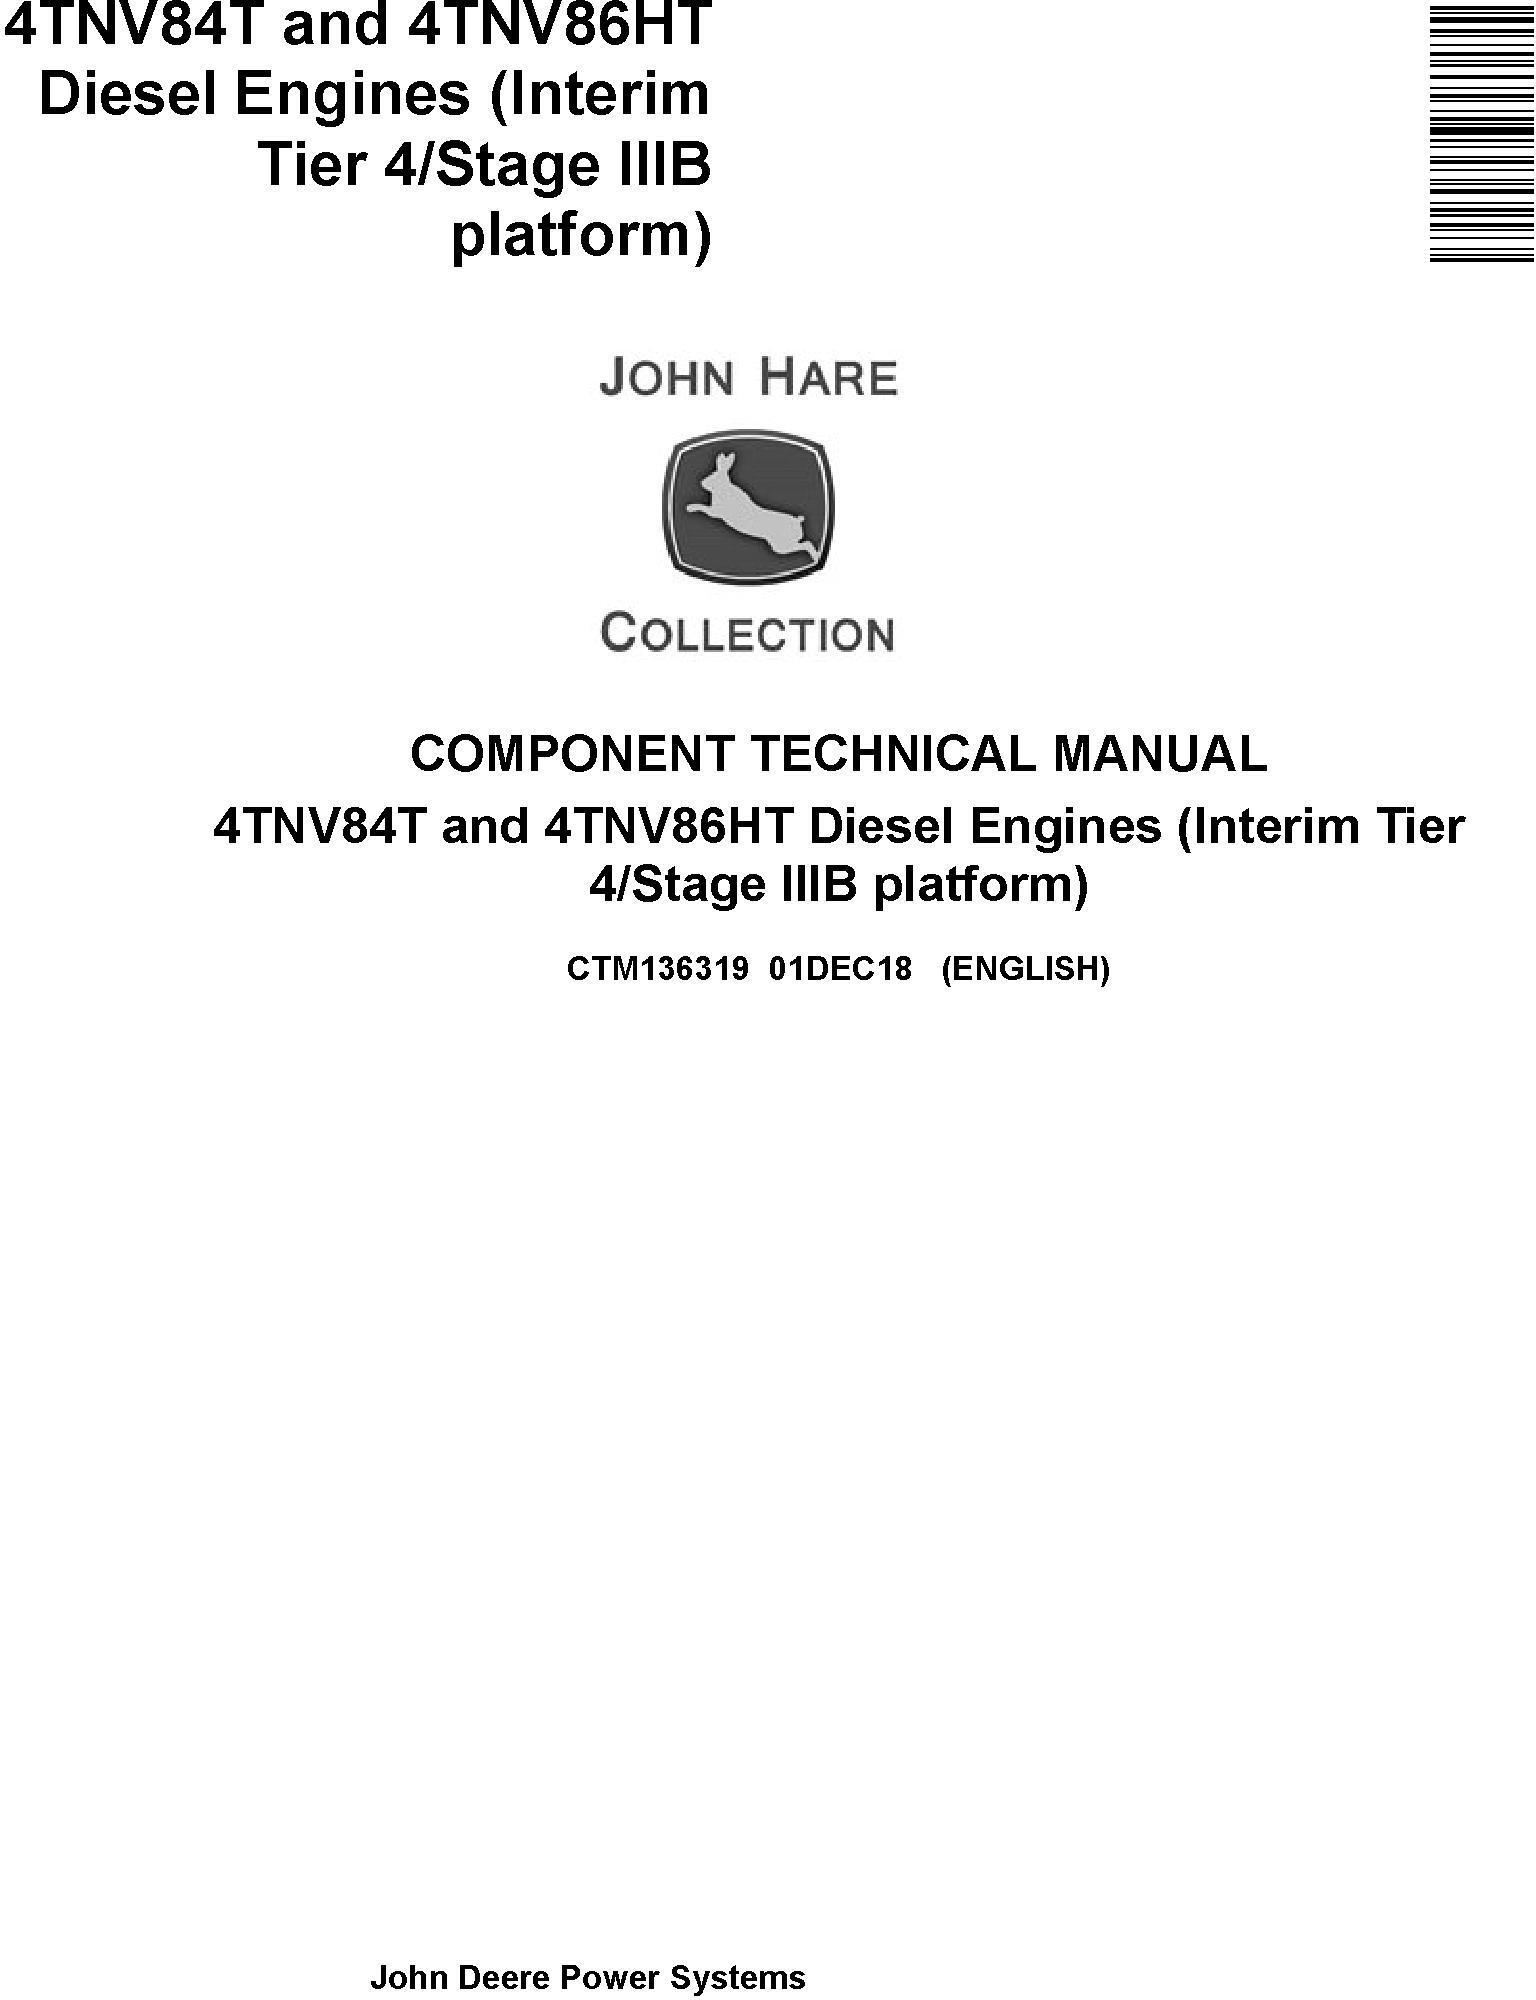 Yanmar 4TNV84T and 4TNV86HT Diesel Engines (IT4/Stage IIIB) Technical Service Manual (CTM136319)